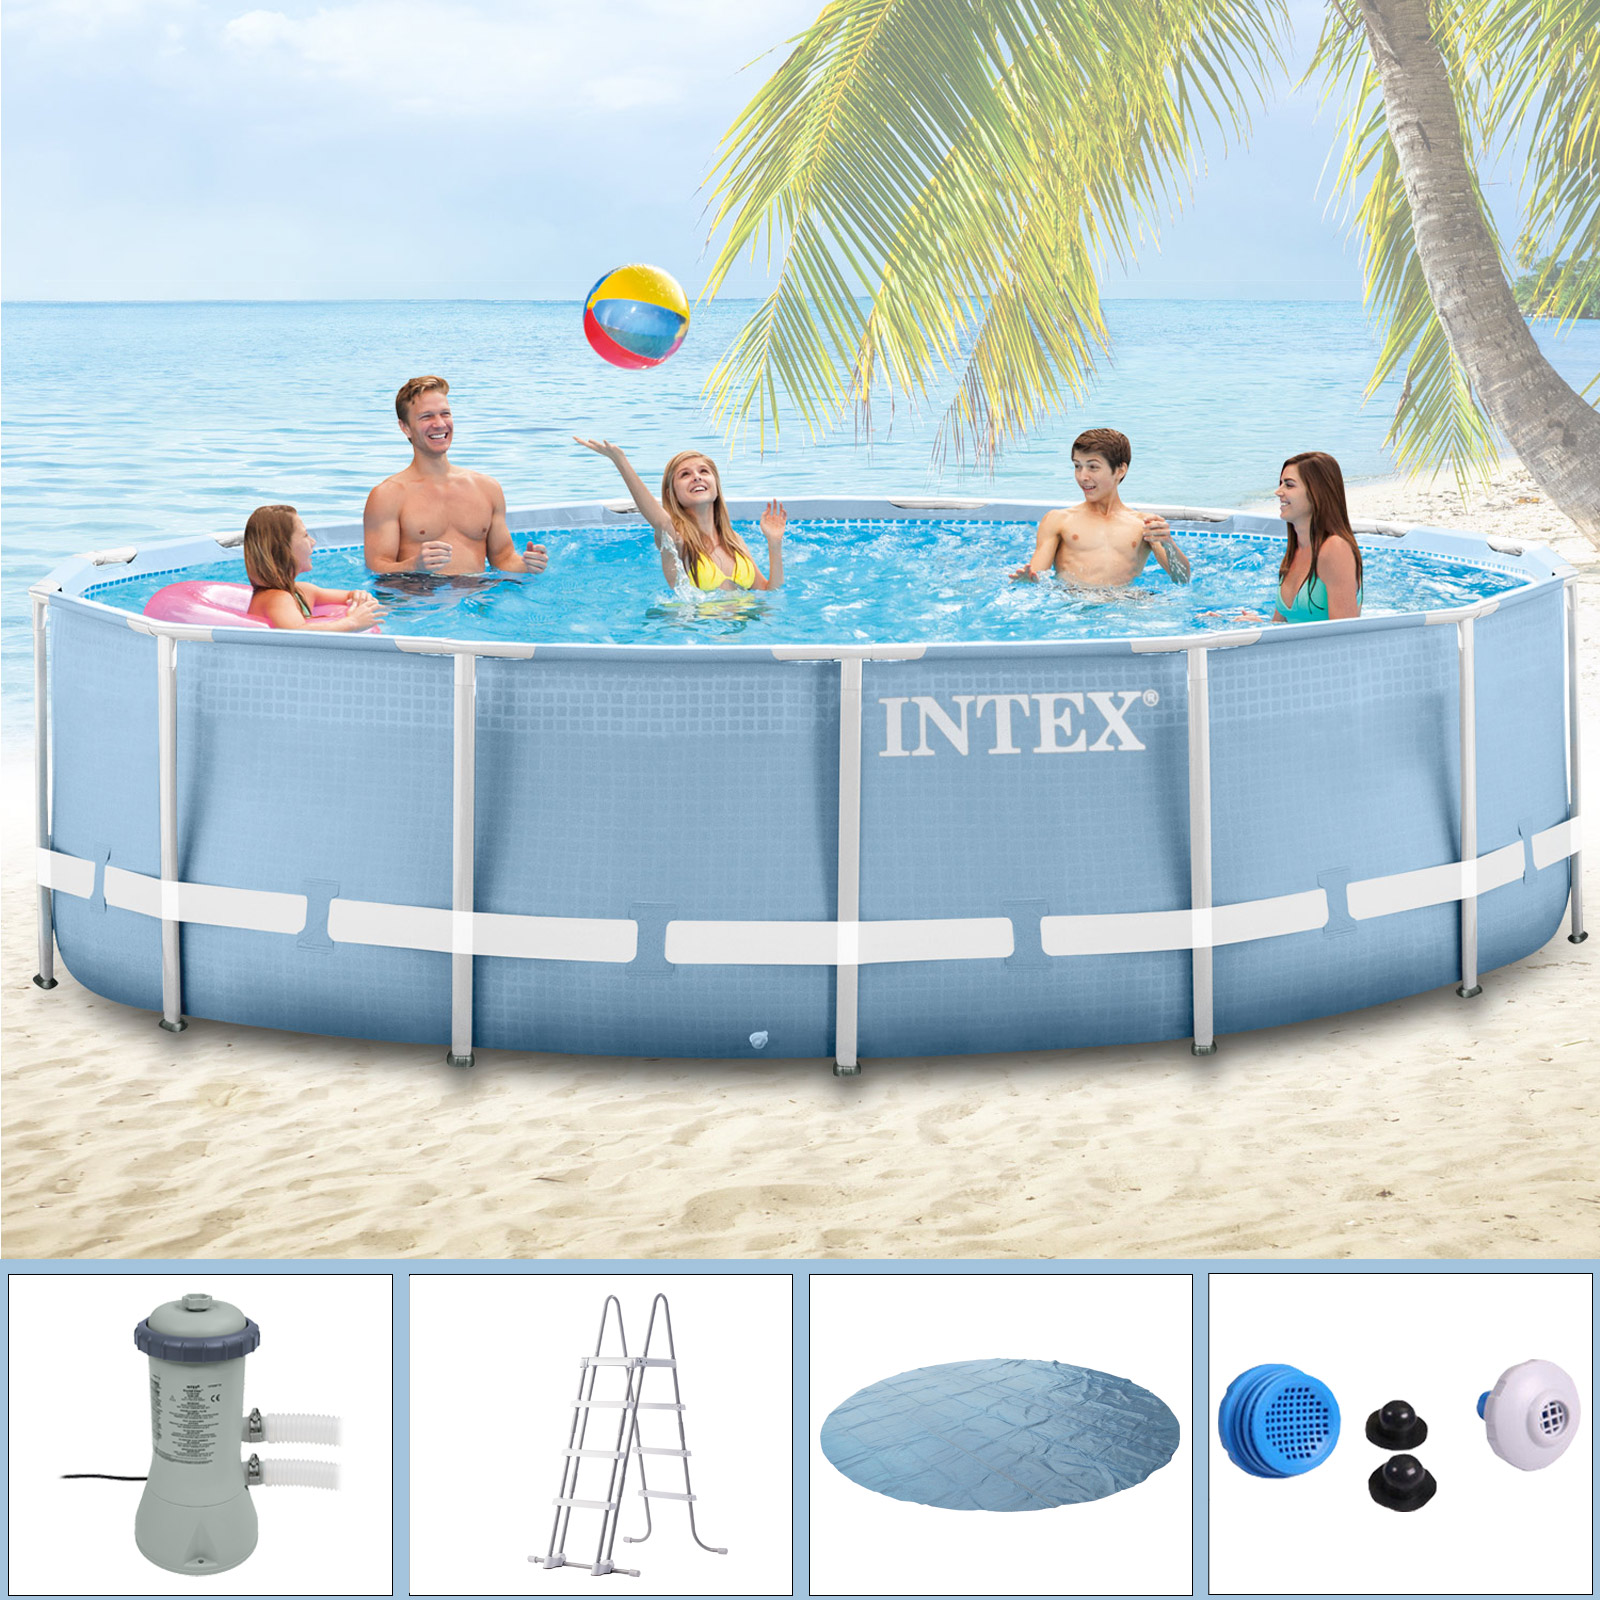 Filterpumpe Pool Entleeren Intex Swimming Pool Frame 457x122 Cm Mit Pumpe Leiter Solarfolie